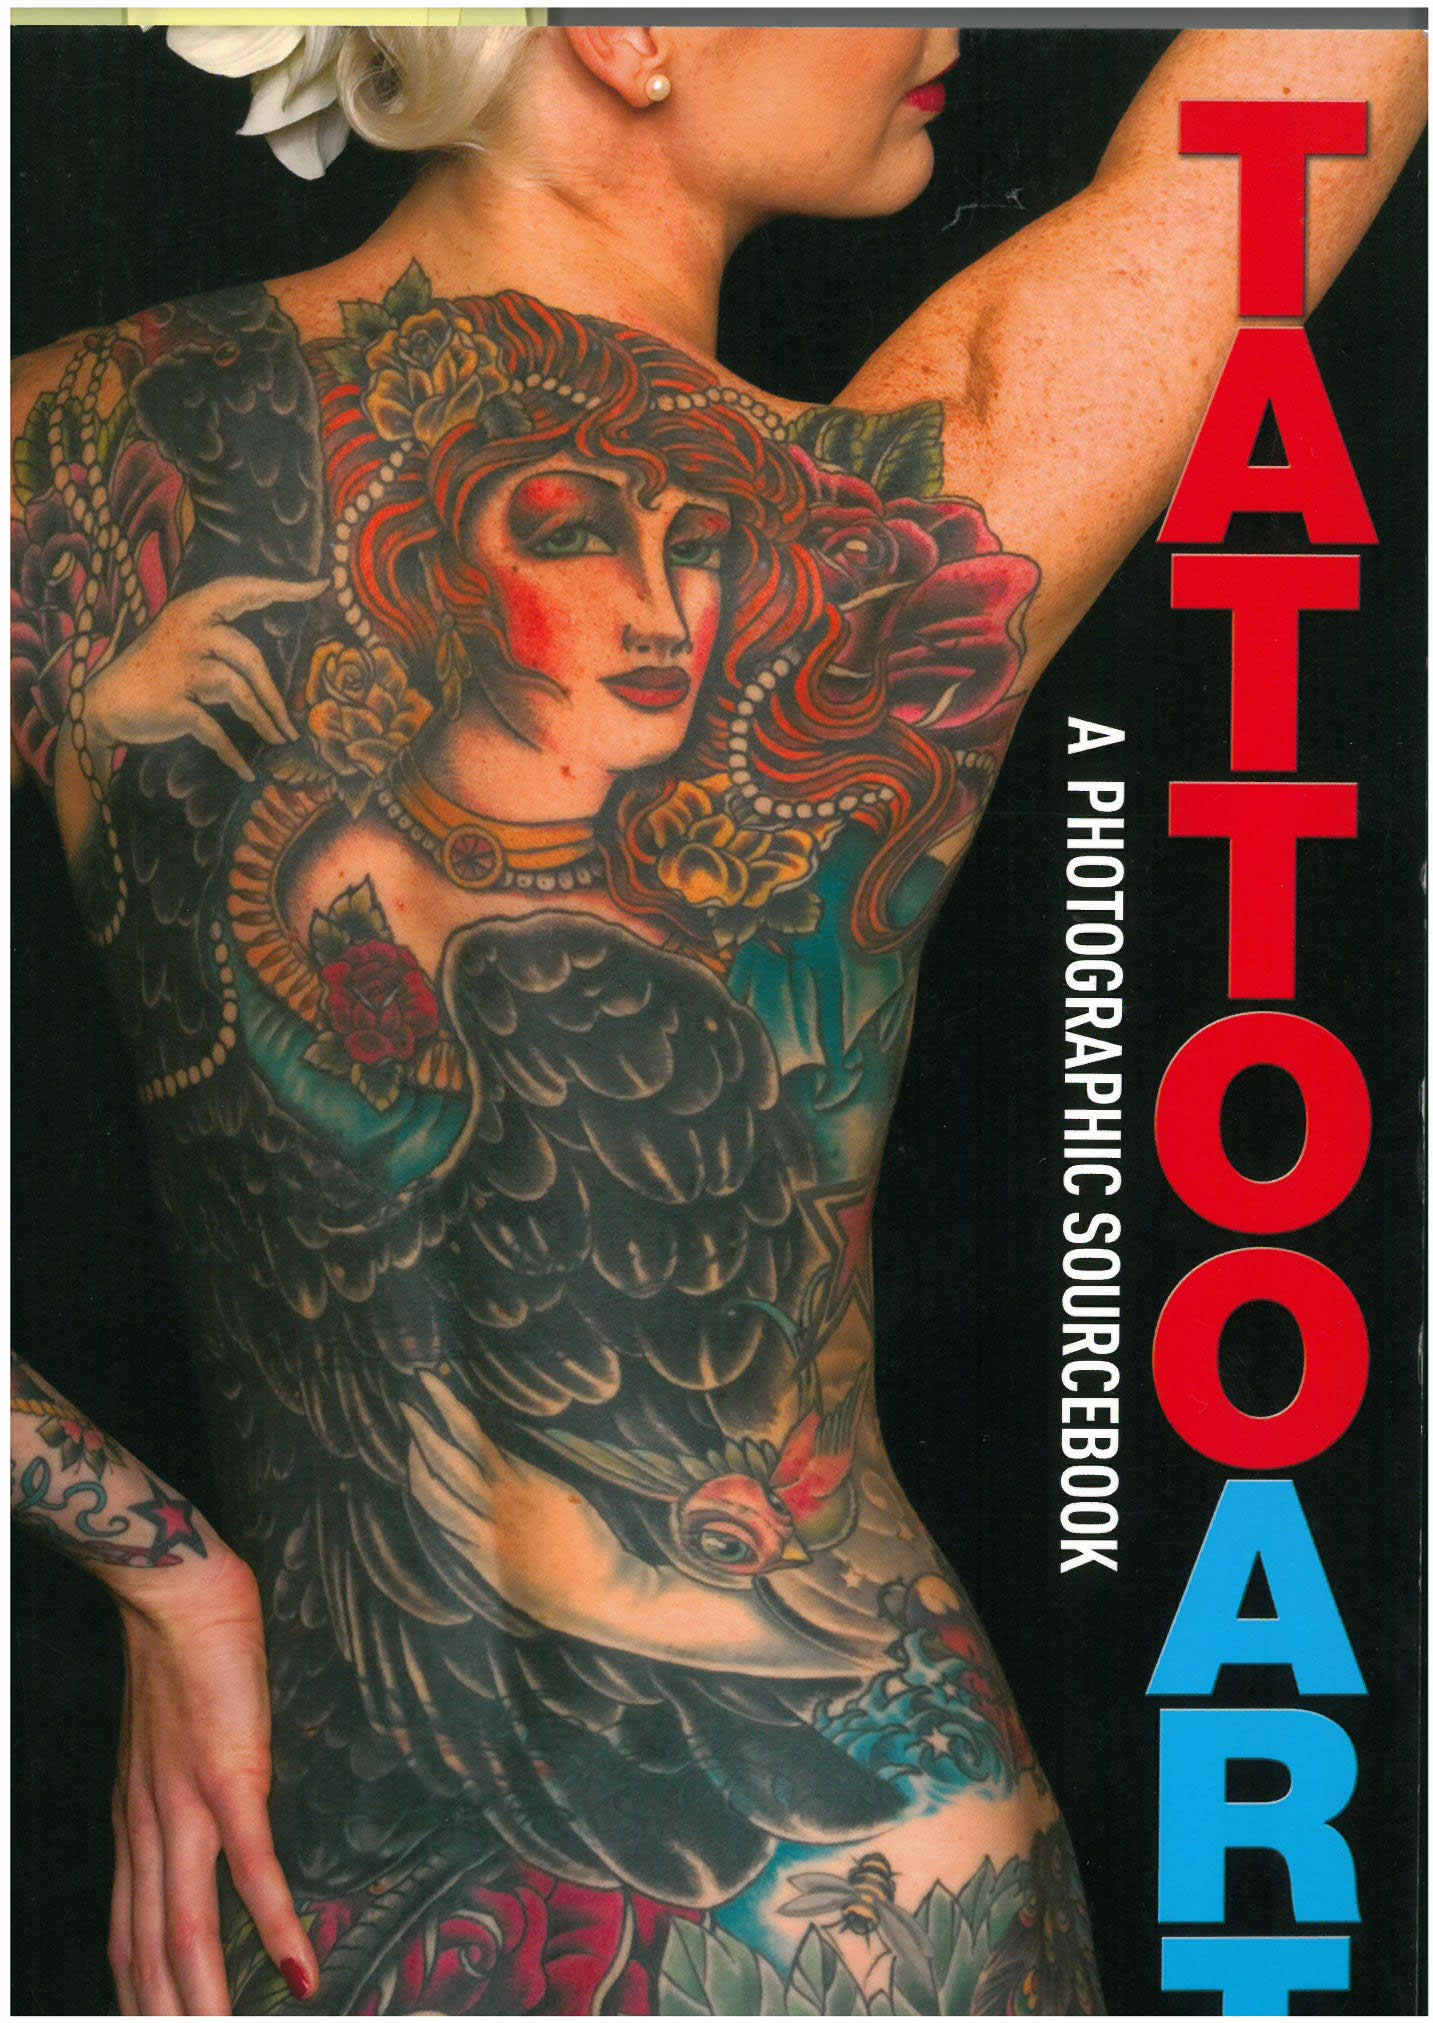 B�cher - Ver�ffentlichungen - TATTOO ART A PHOTOGRAPHIC SOURCEBOOK - 2012